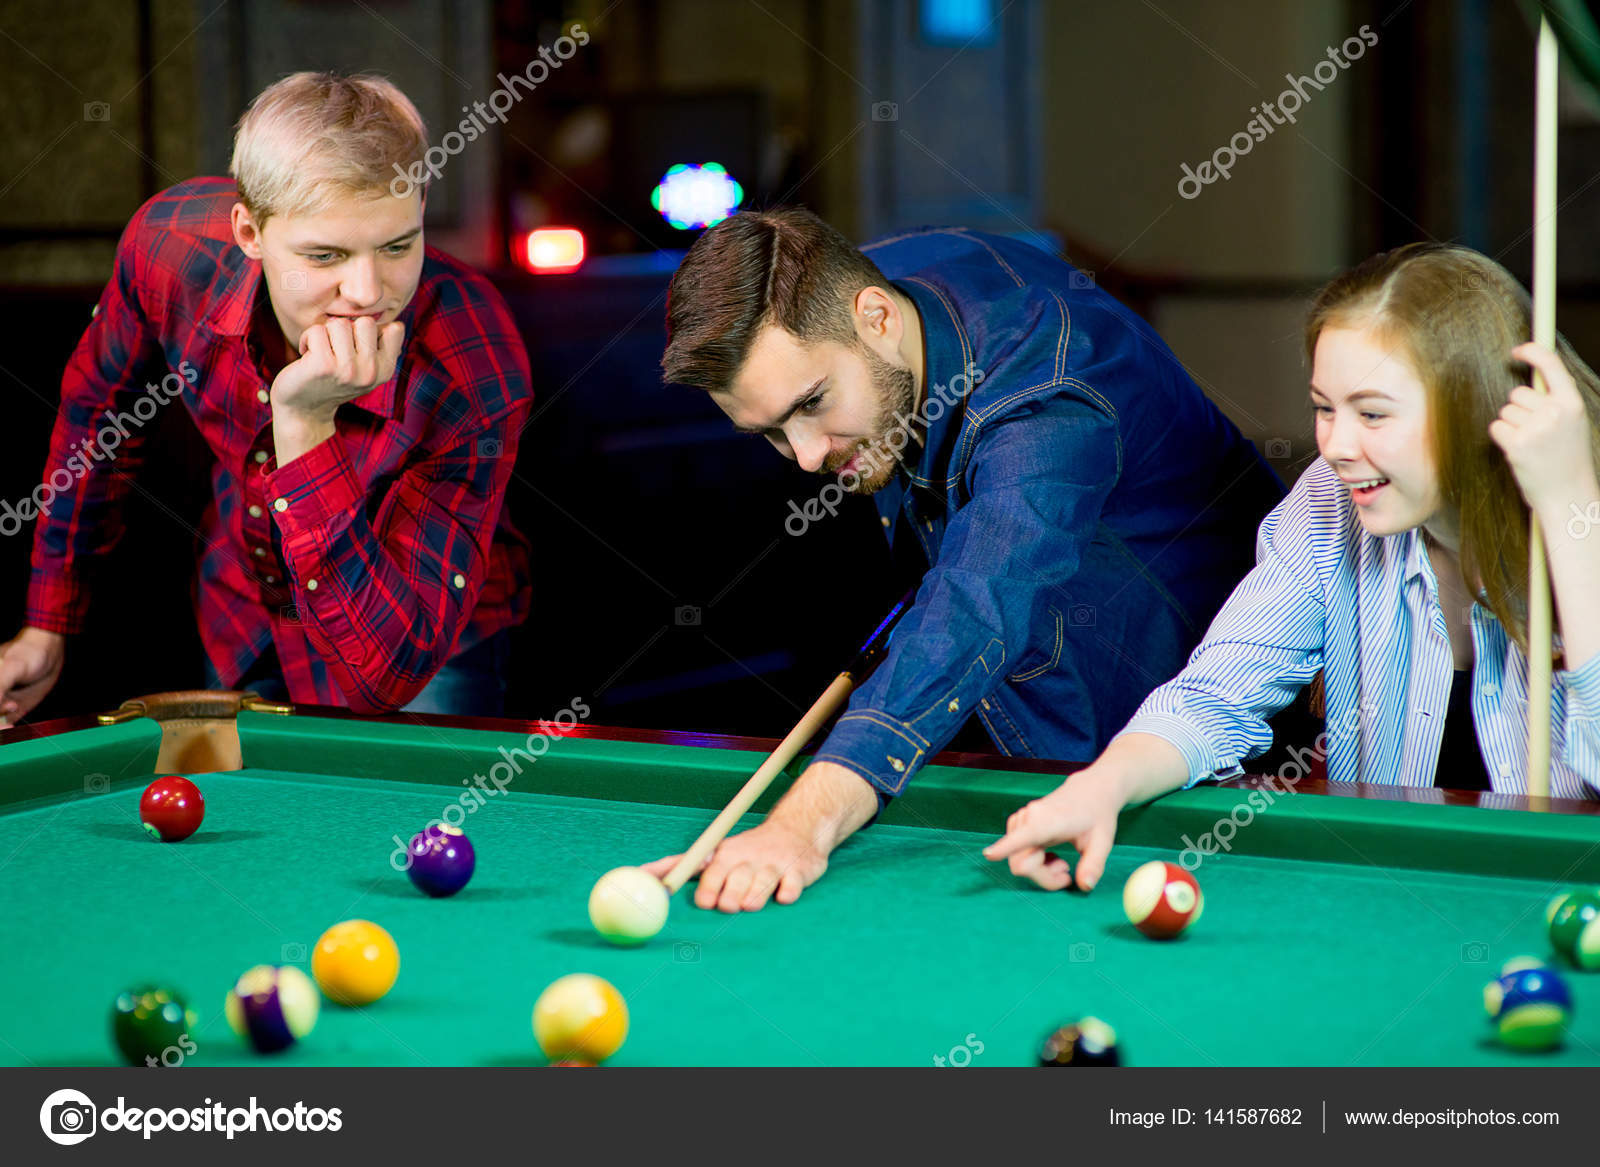 billard game played but two guys that start playing